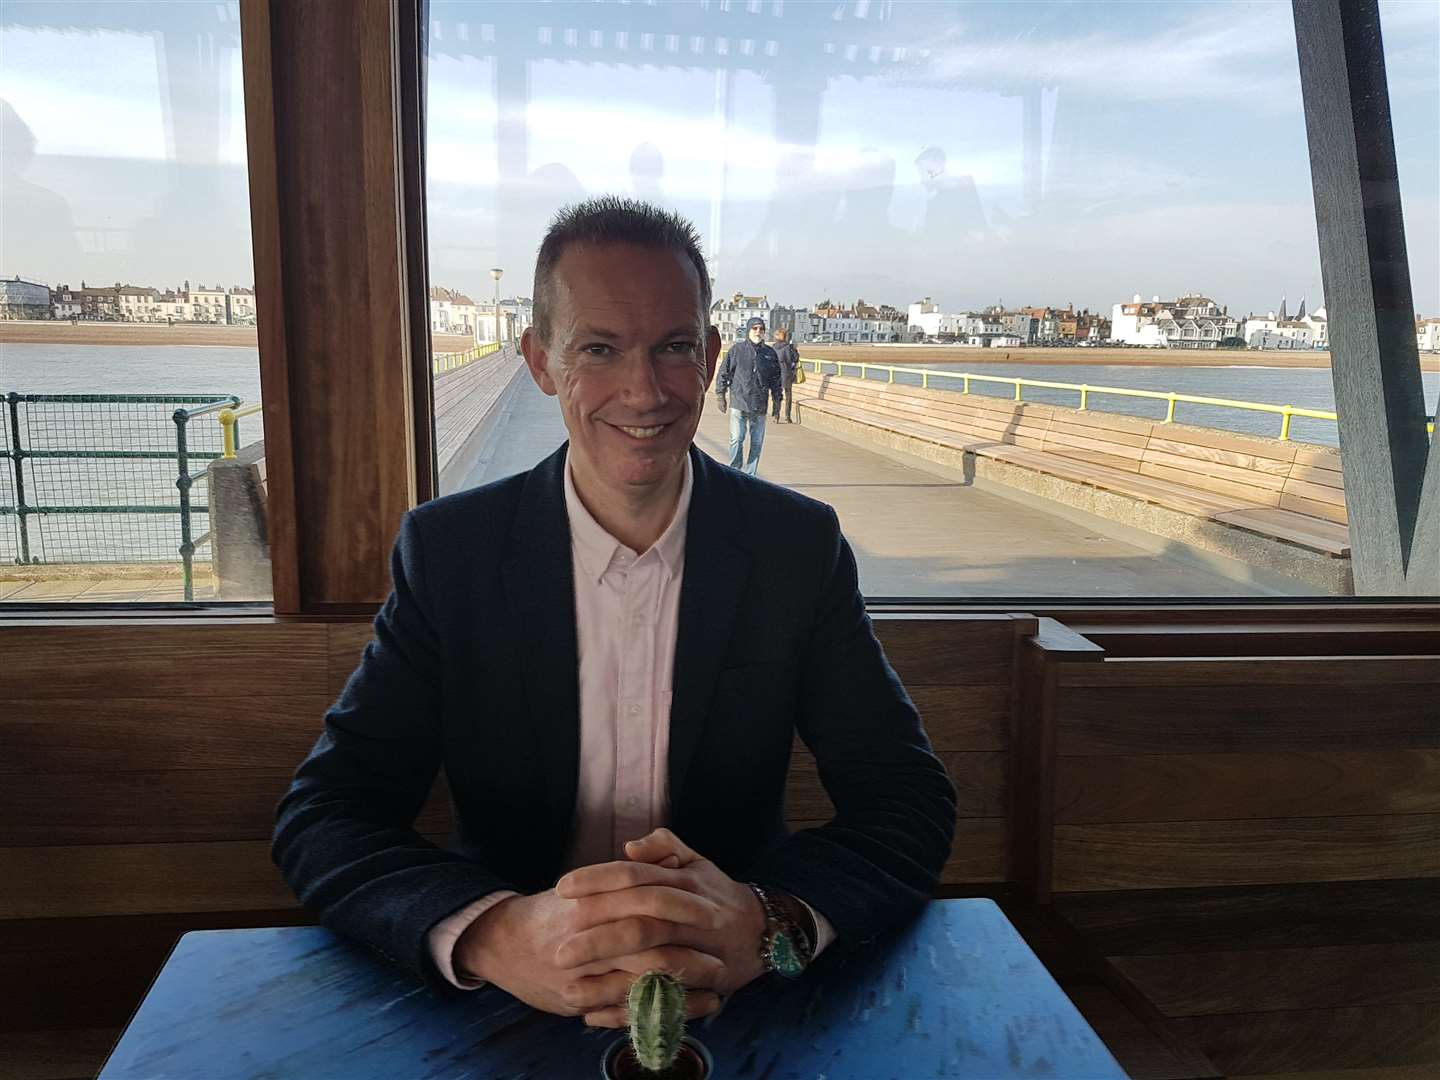 Dover District Council's portfolio holder for property management and environmental health Cllr Trevor Bartlett has played an important role in pushing through the pier project